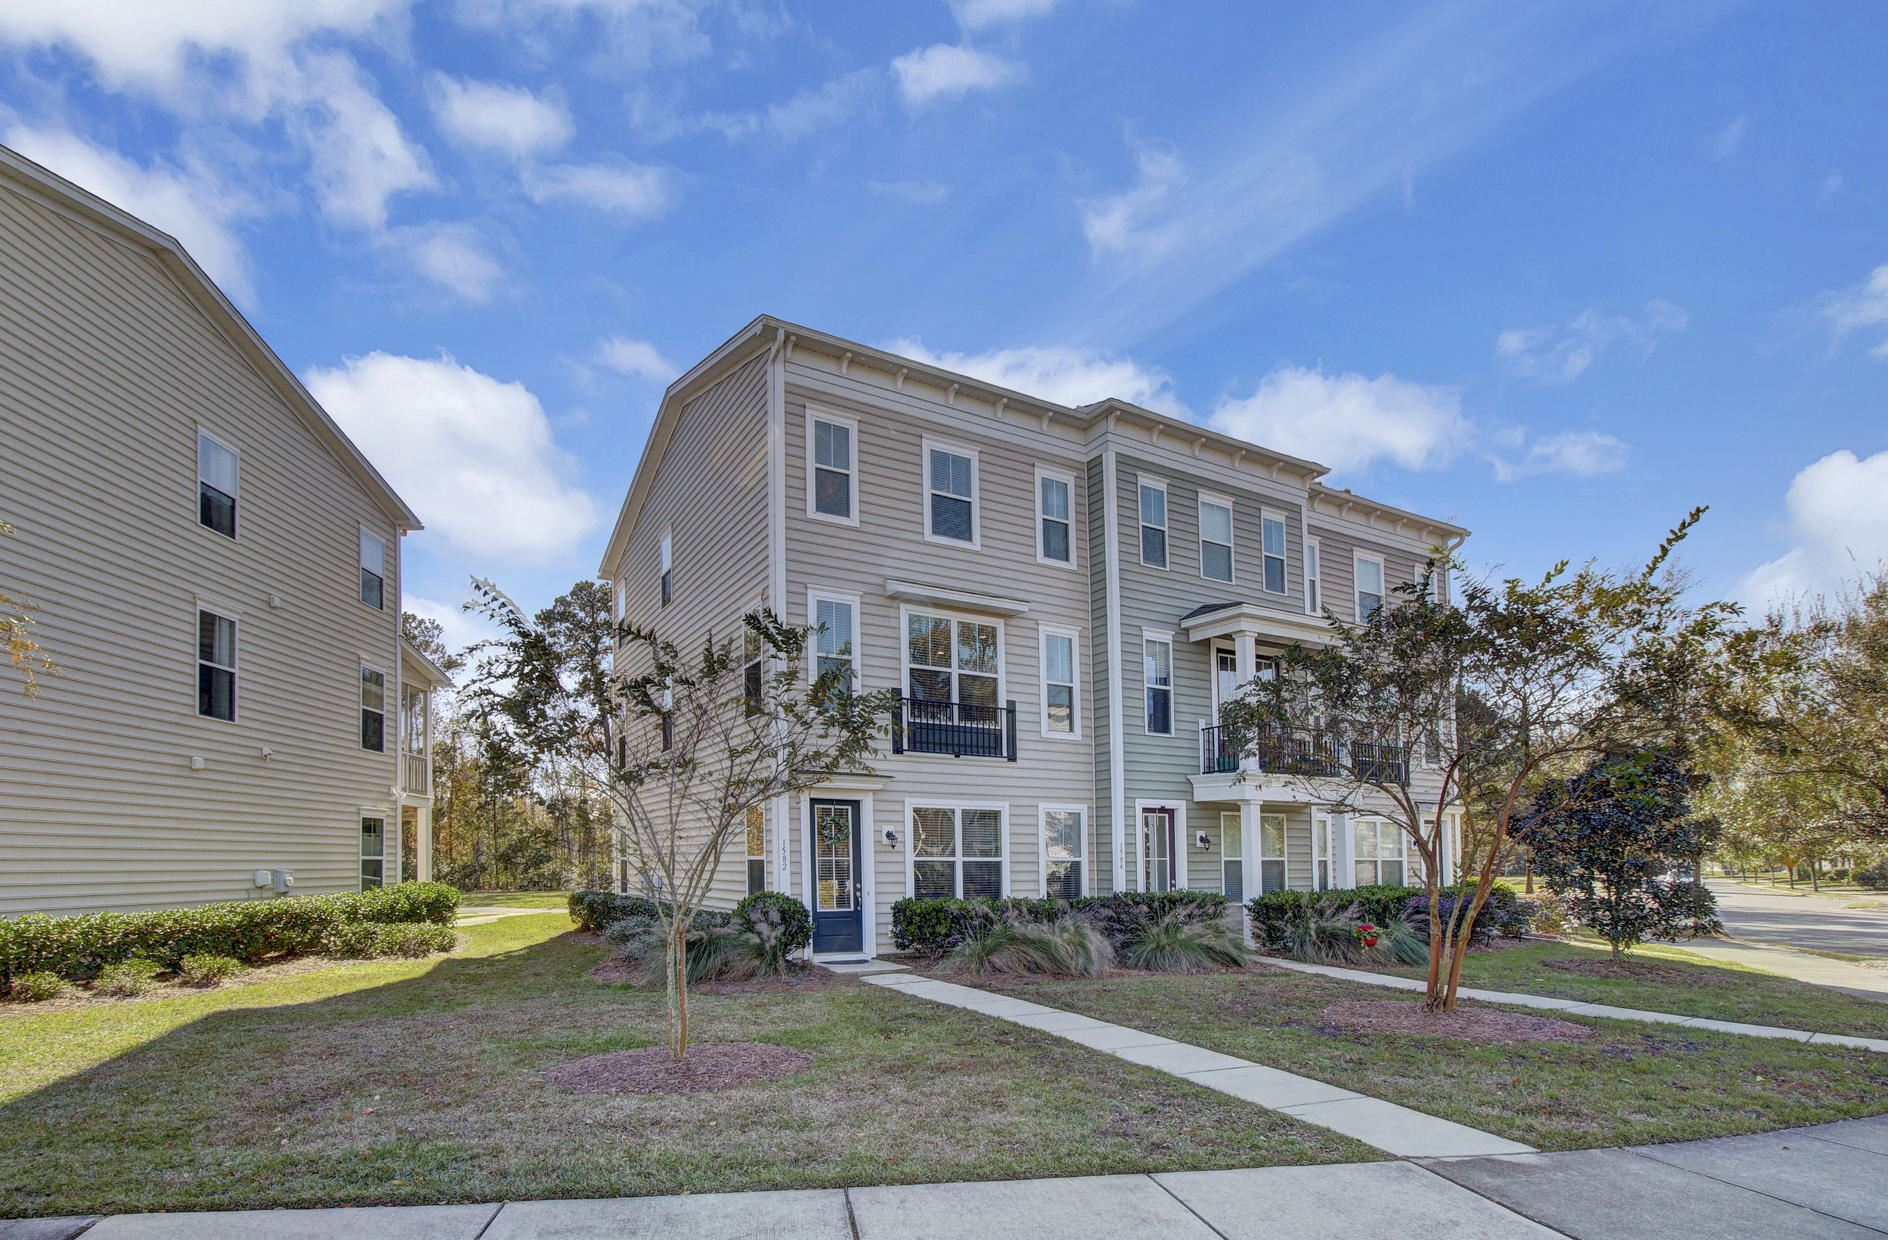 Photo of 1582 Bluewater Way, Charleston, SC 29414 (MLS # 20032149)